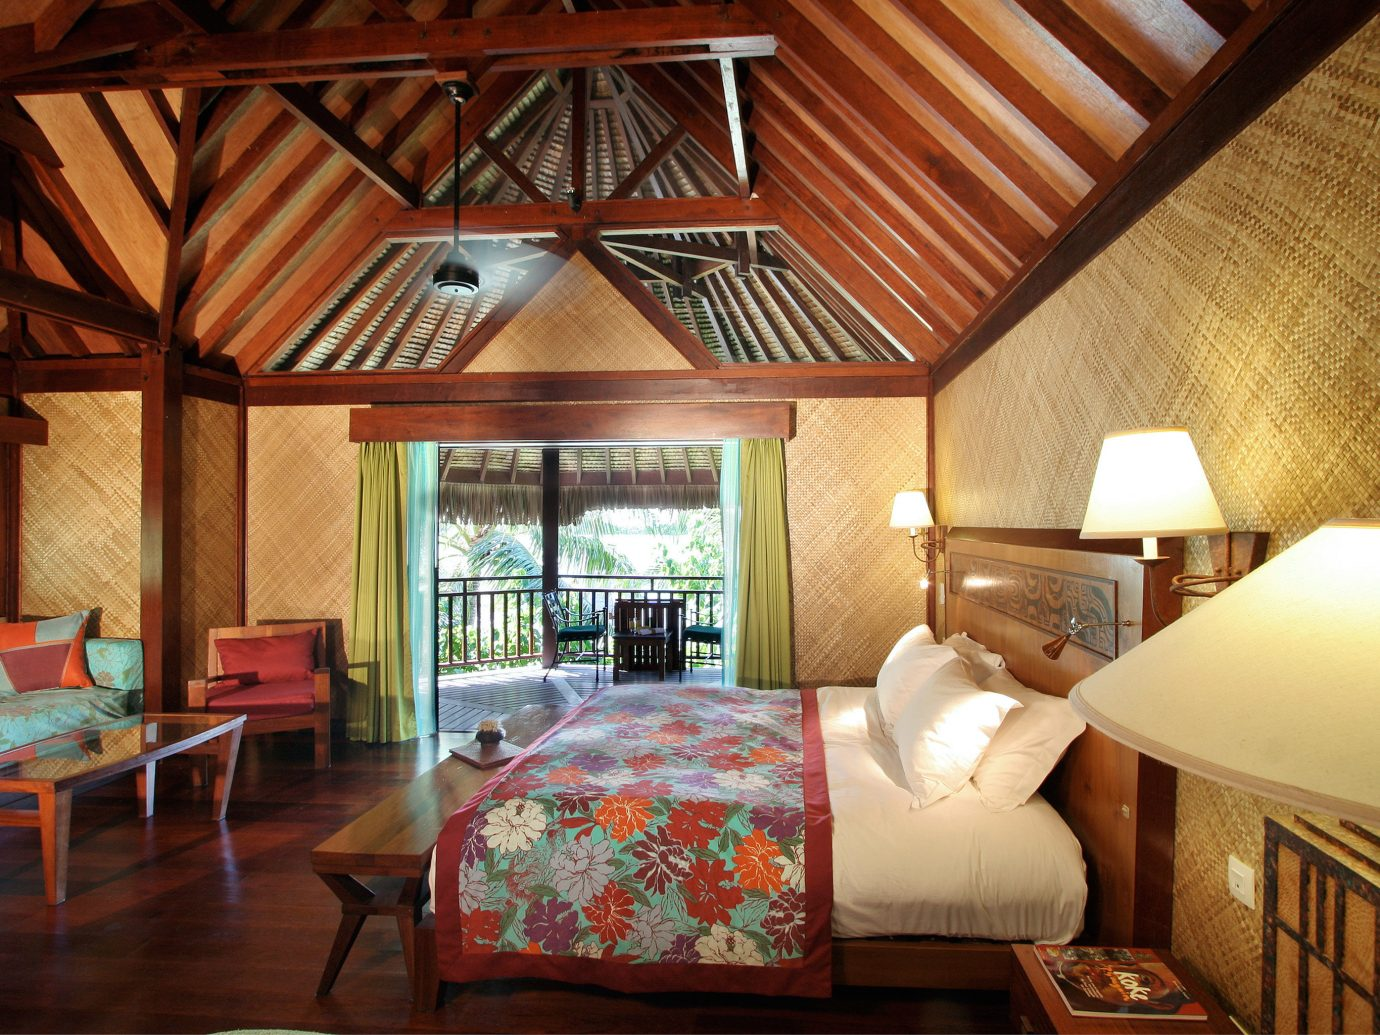 Balcony Bedroom Deck Hotels Living Overwater Bungalow Patio Resort Scenic views indoor floor room bed property estate building house cottage living room home wooden farmhouse interior design real estate Villa Suite hotel ceiling wood area furniture